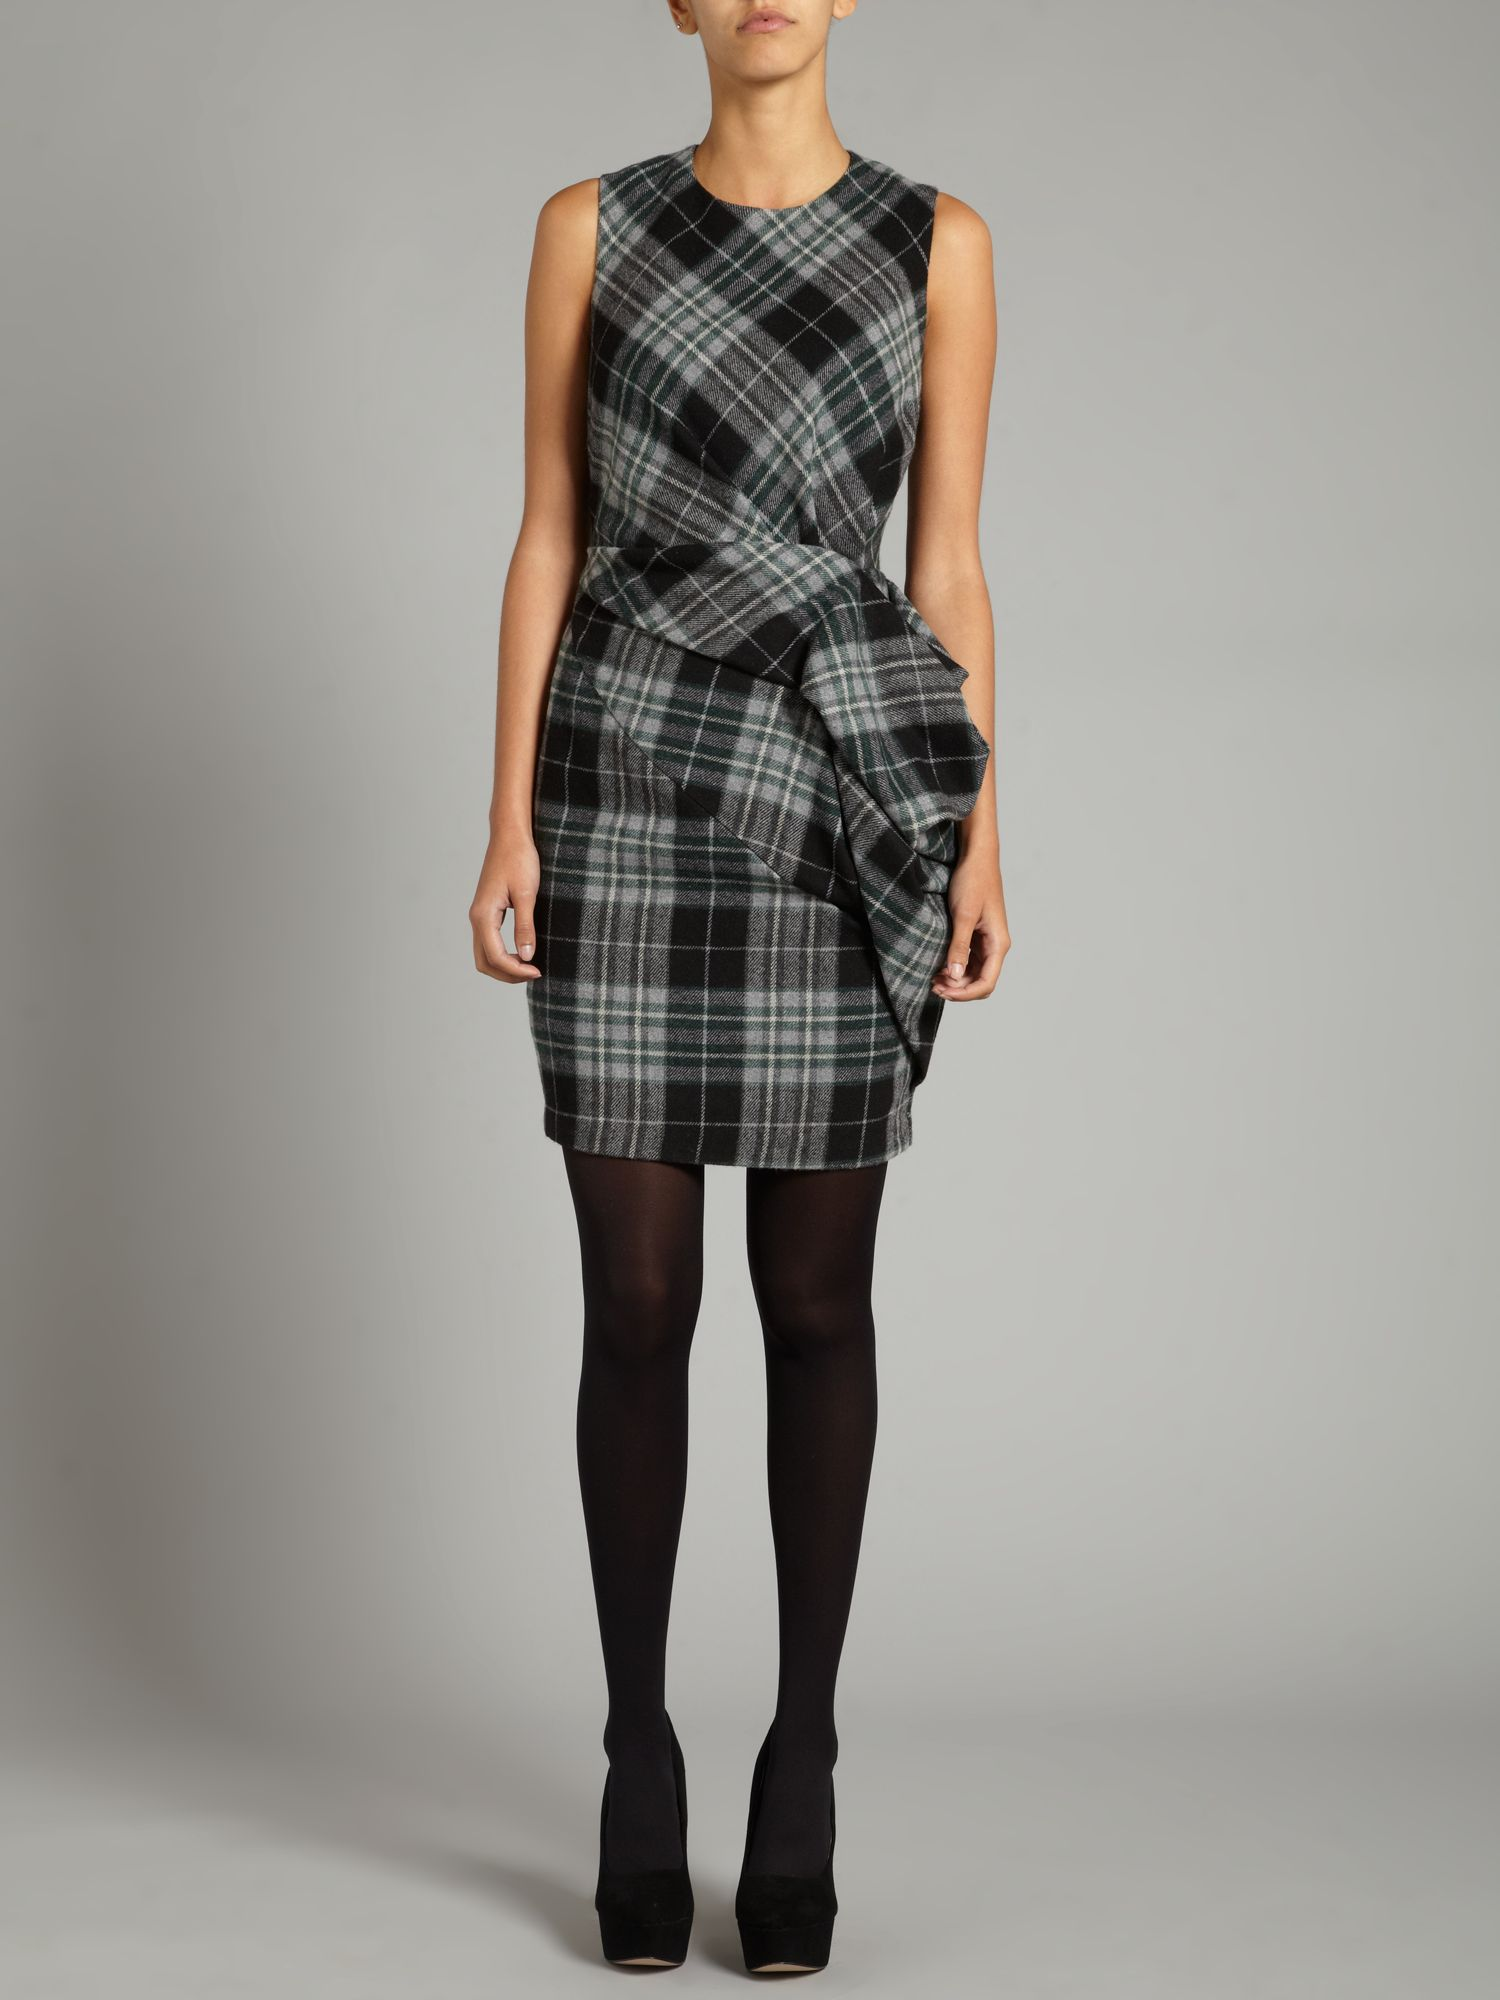 Brandy check dress